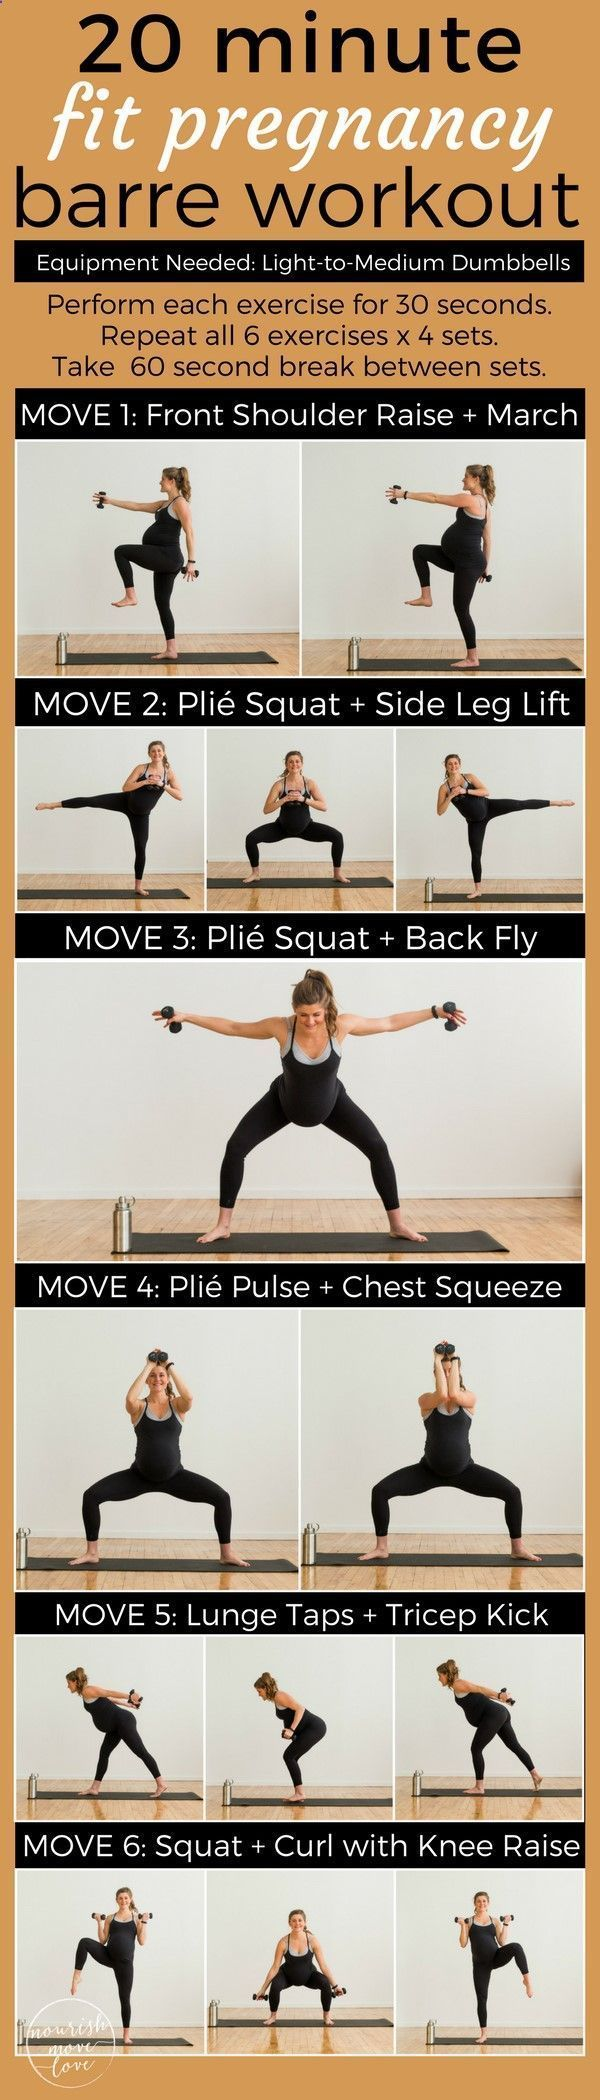 A low impact barre workout perfect for everyone; pregnant, postpartum, bad knees, or just need a low impact workout to sculpt and tone at home. A 20 minute workout thats easy on the knees but challenges your fitness. Combines traditional barre movements with strength training exercises to sculpt, tone, burn calories. Upper body, lower body, shoulders, squats, triceps, biceps, and booty work! #pregnantworkout